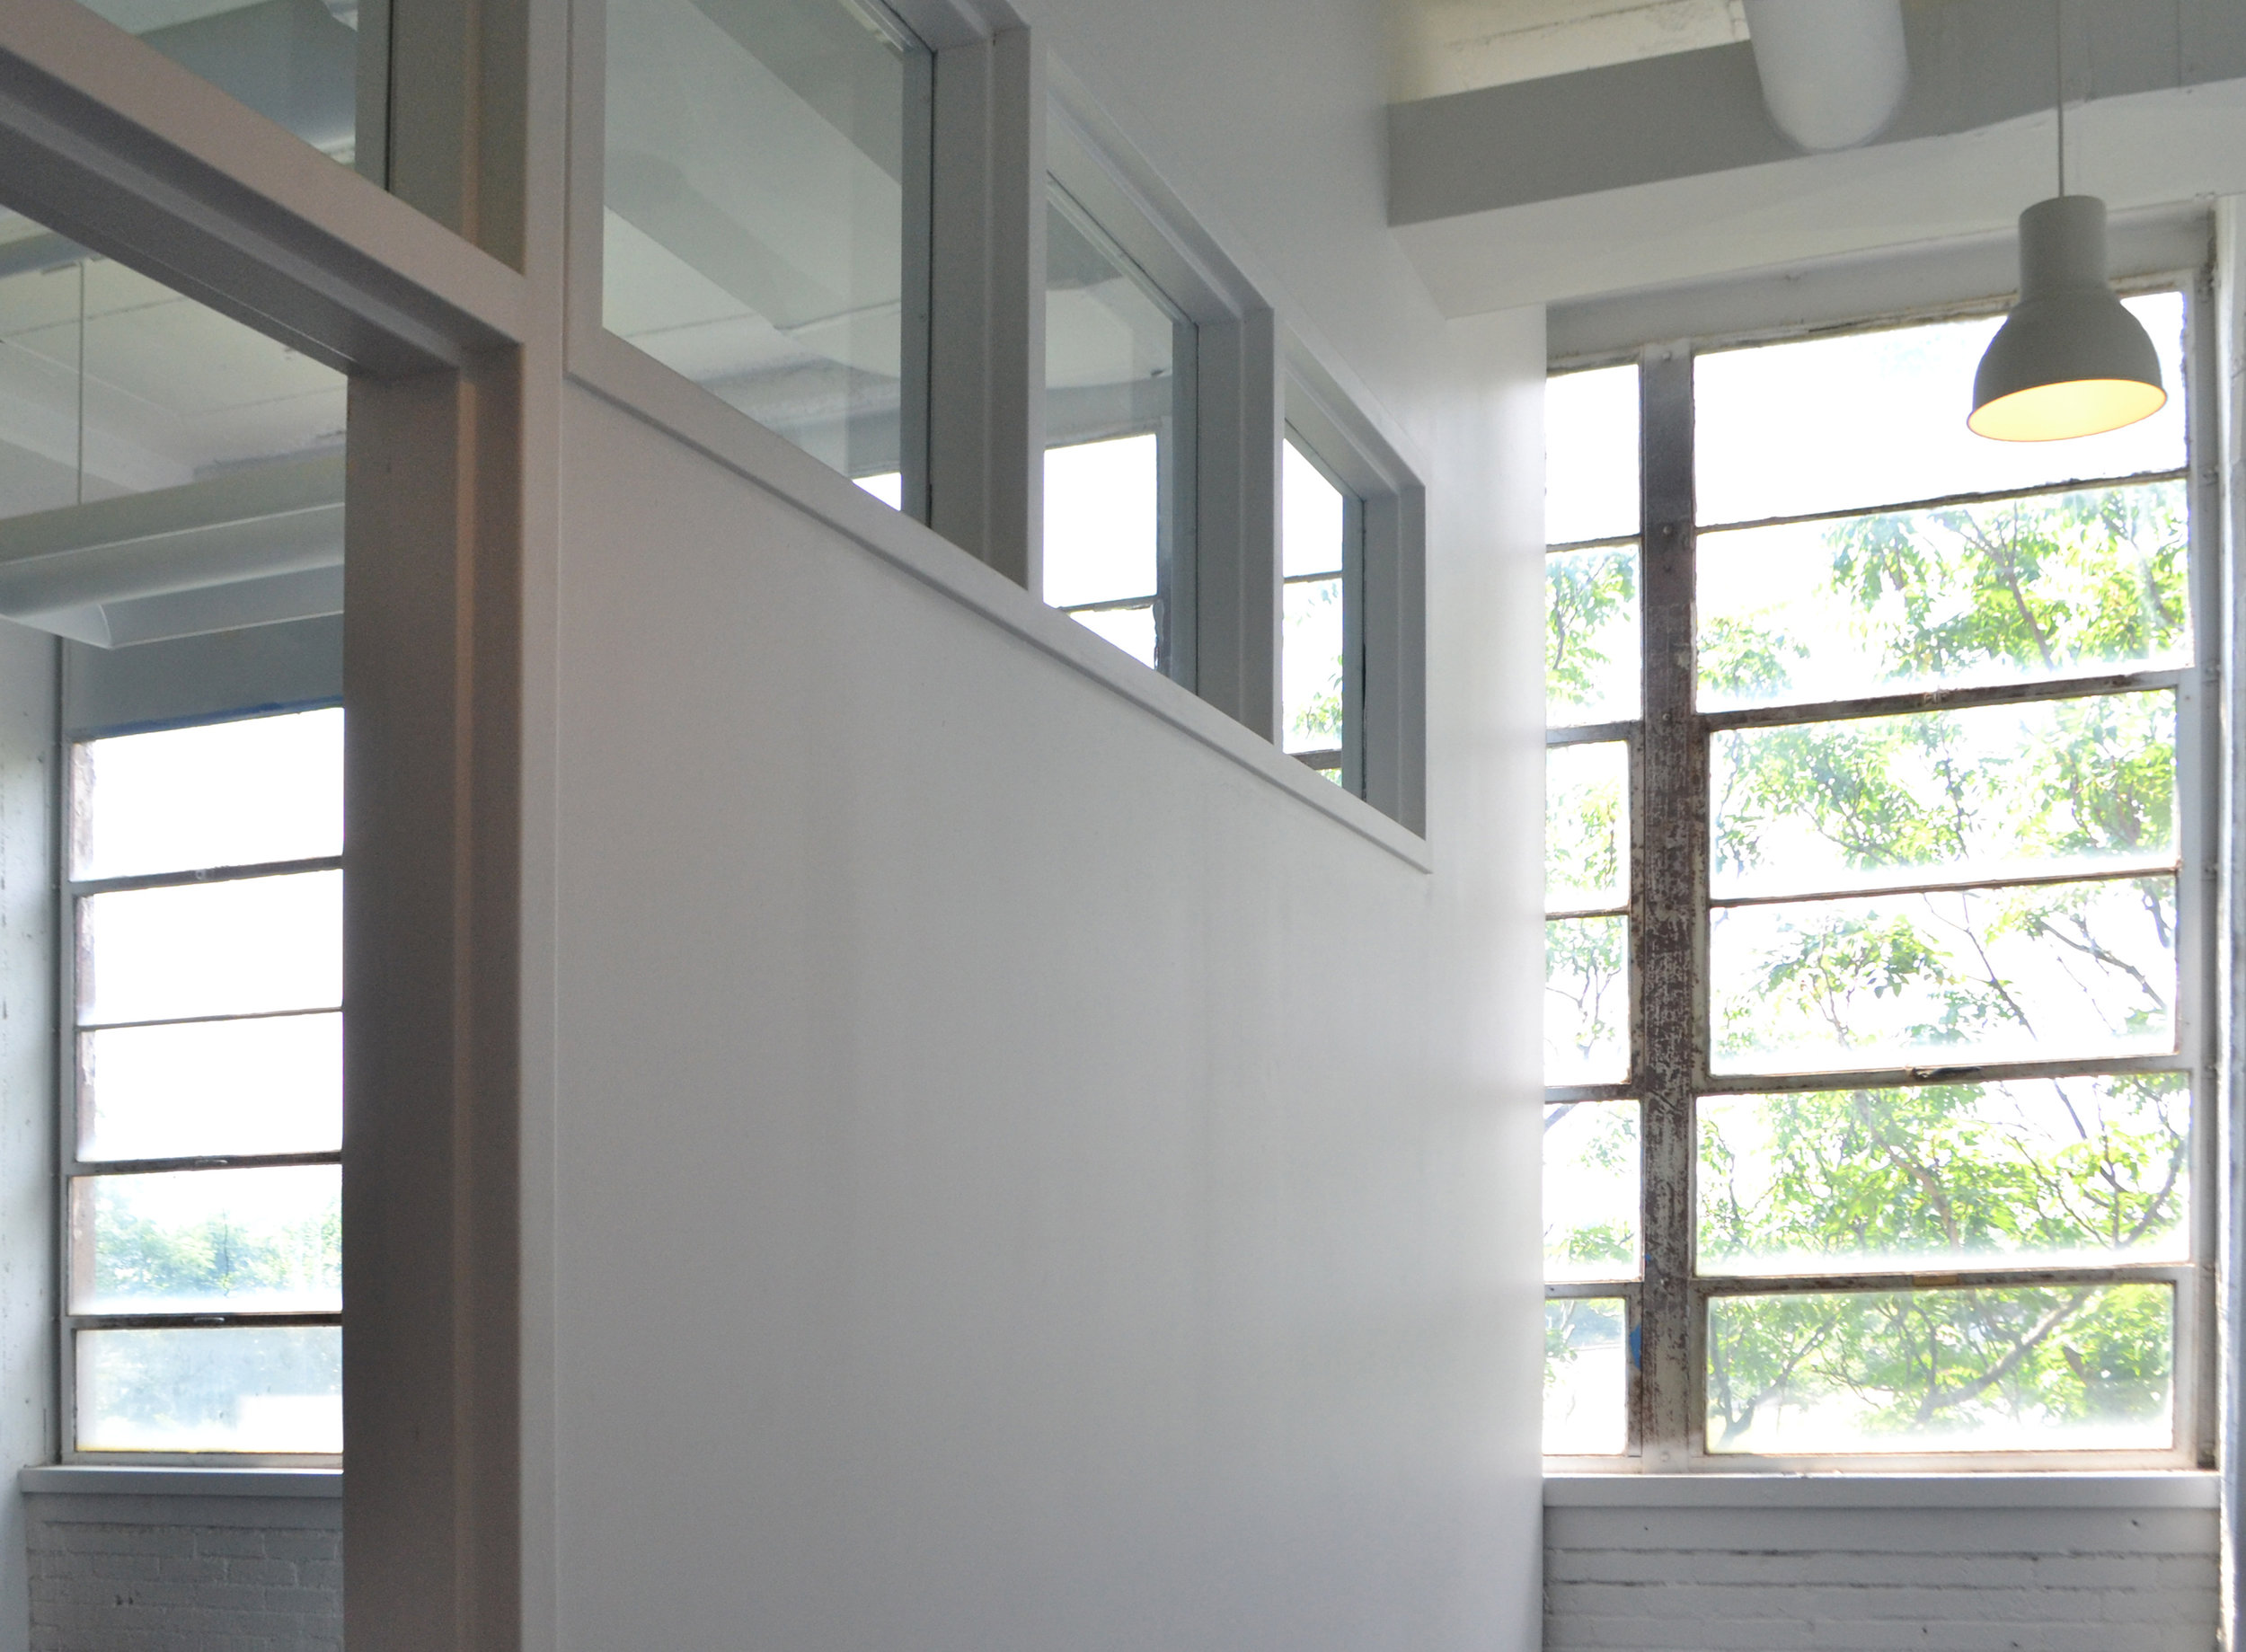 Stock transom windows take advantage of light from existing large industrial windows